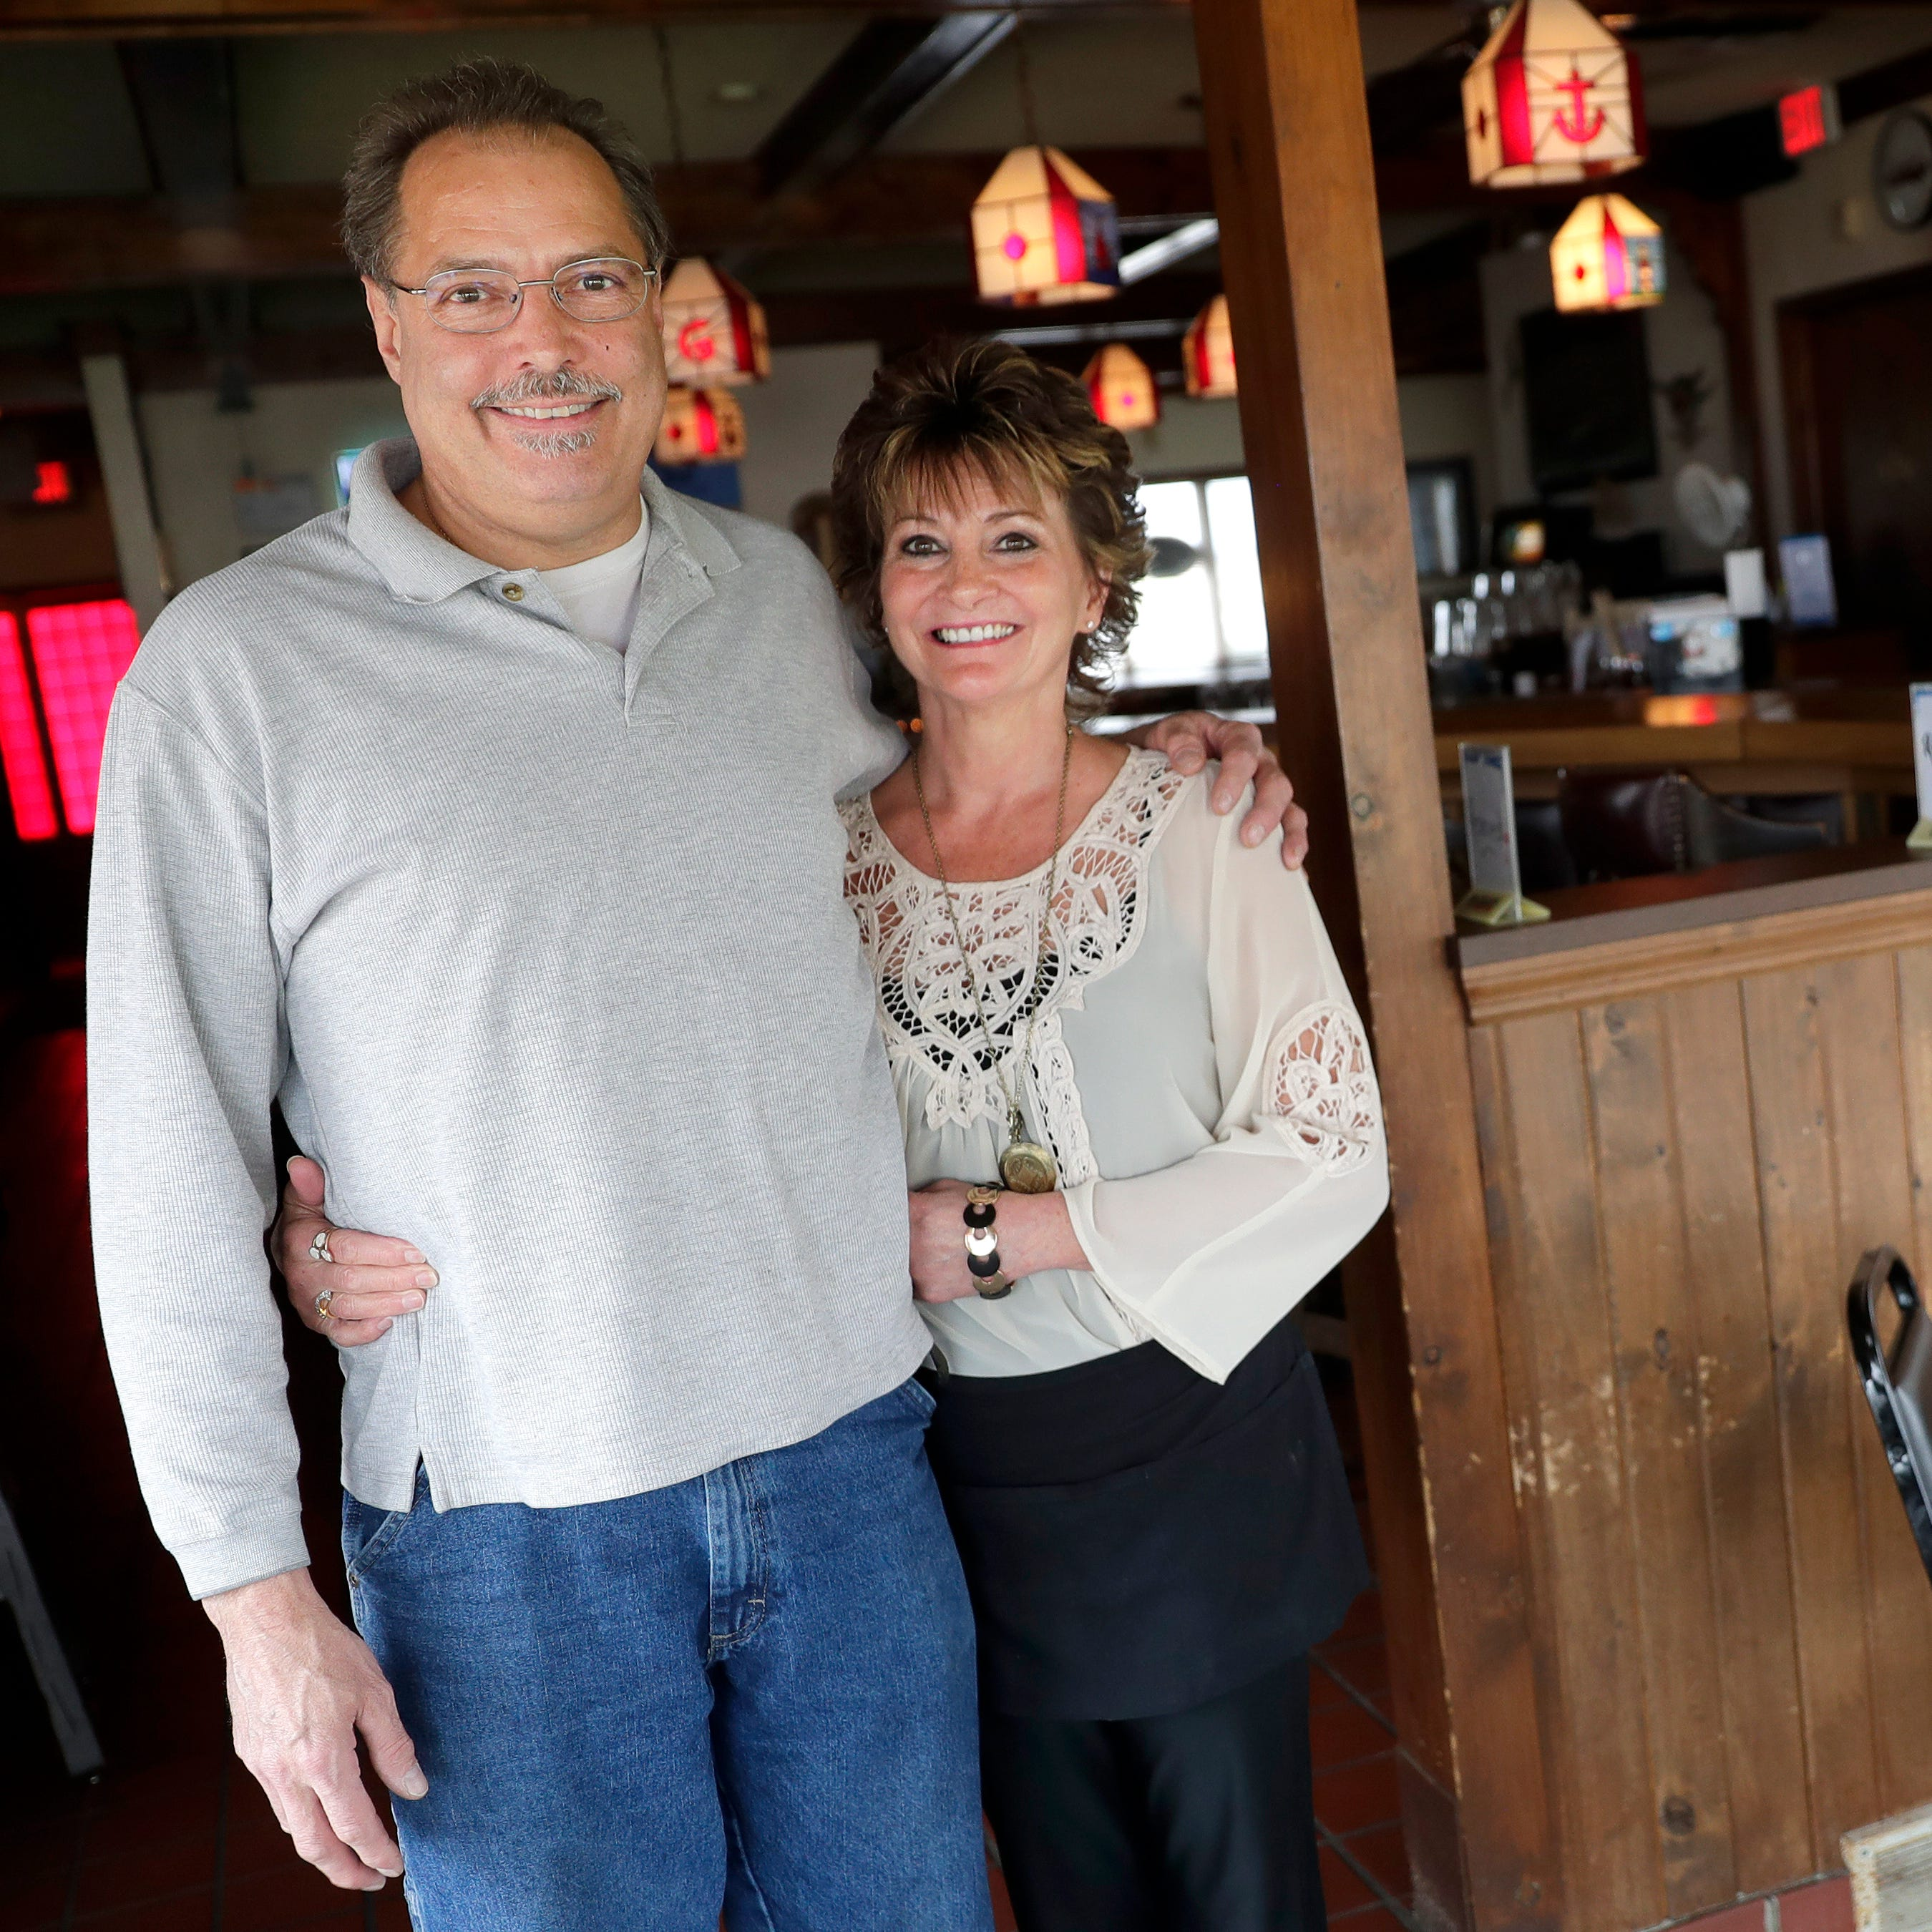 Gib's On The Lake supper club is popular for German food, Lake Michigan views